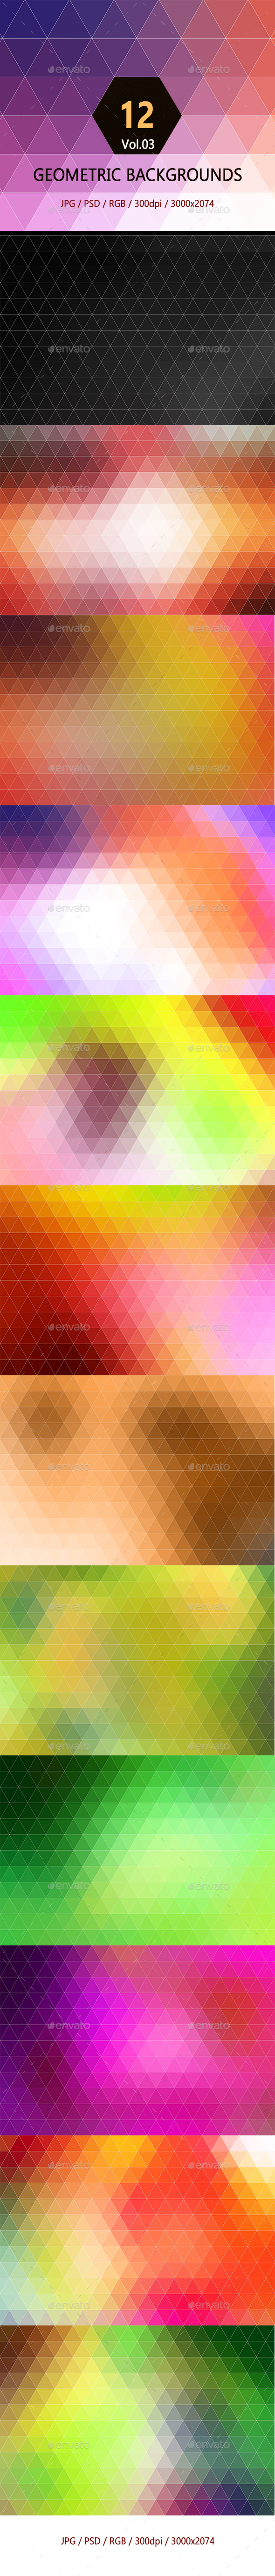 12 Geometric Backgrounds Vol.03 - Abstract Backgrounds